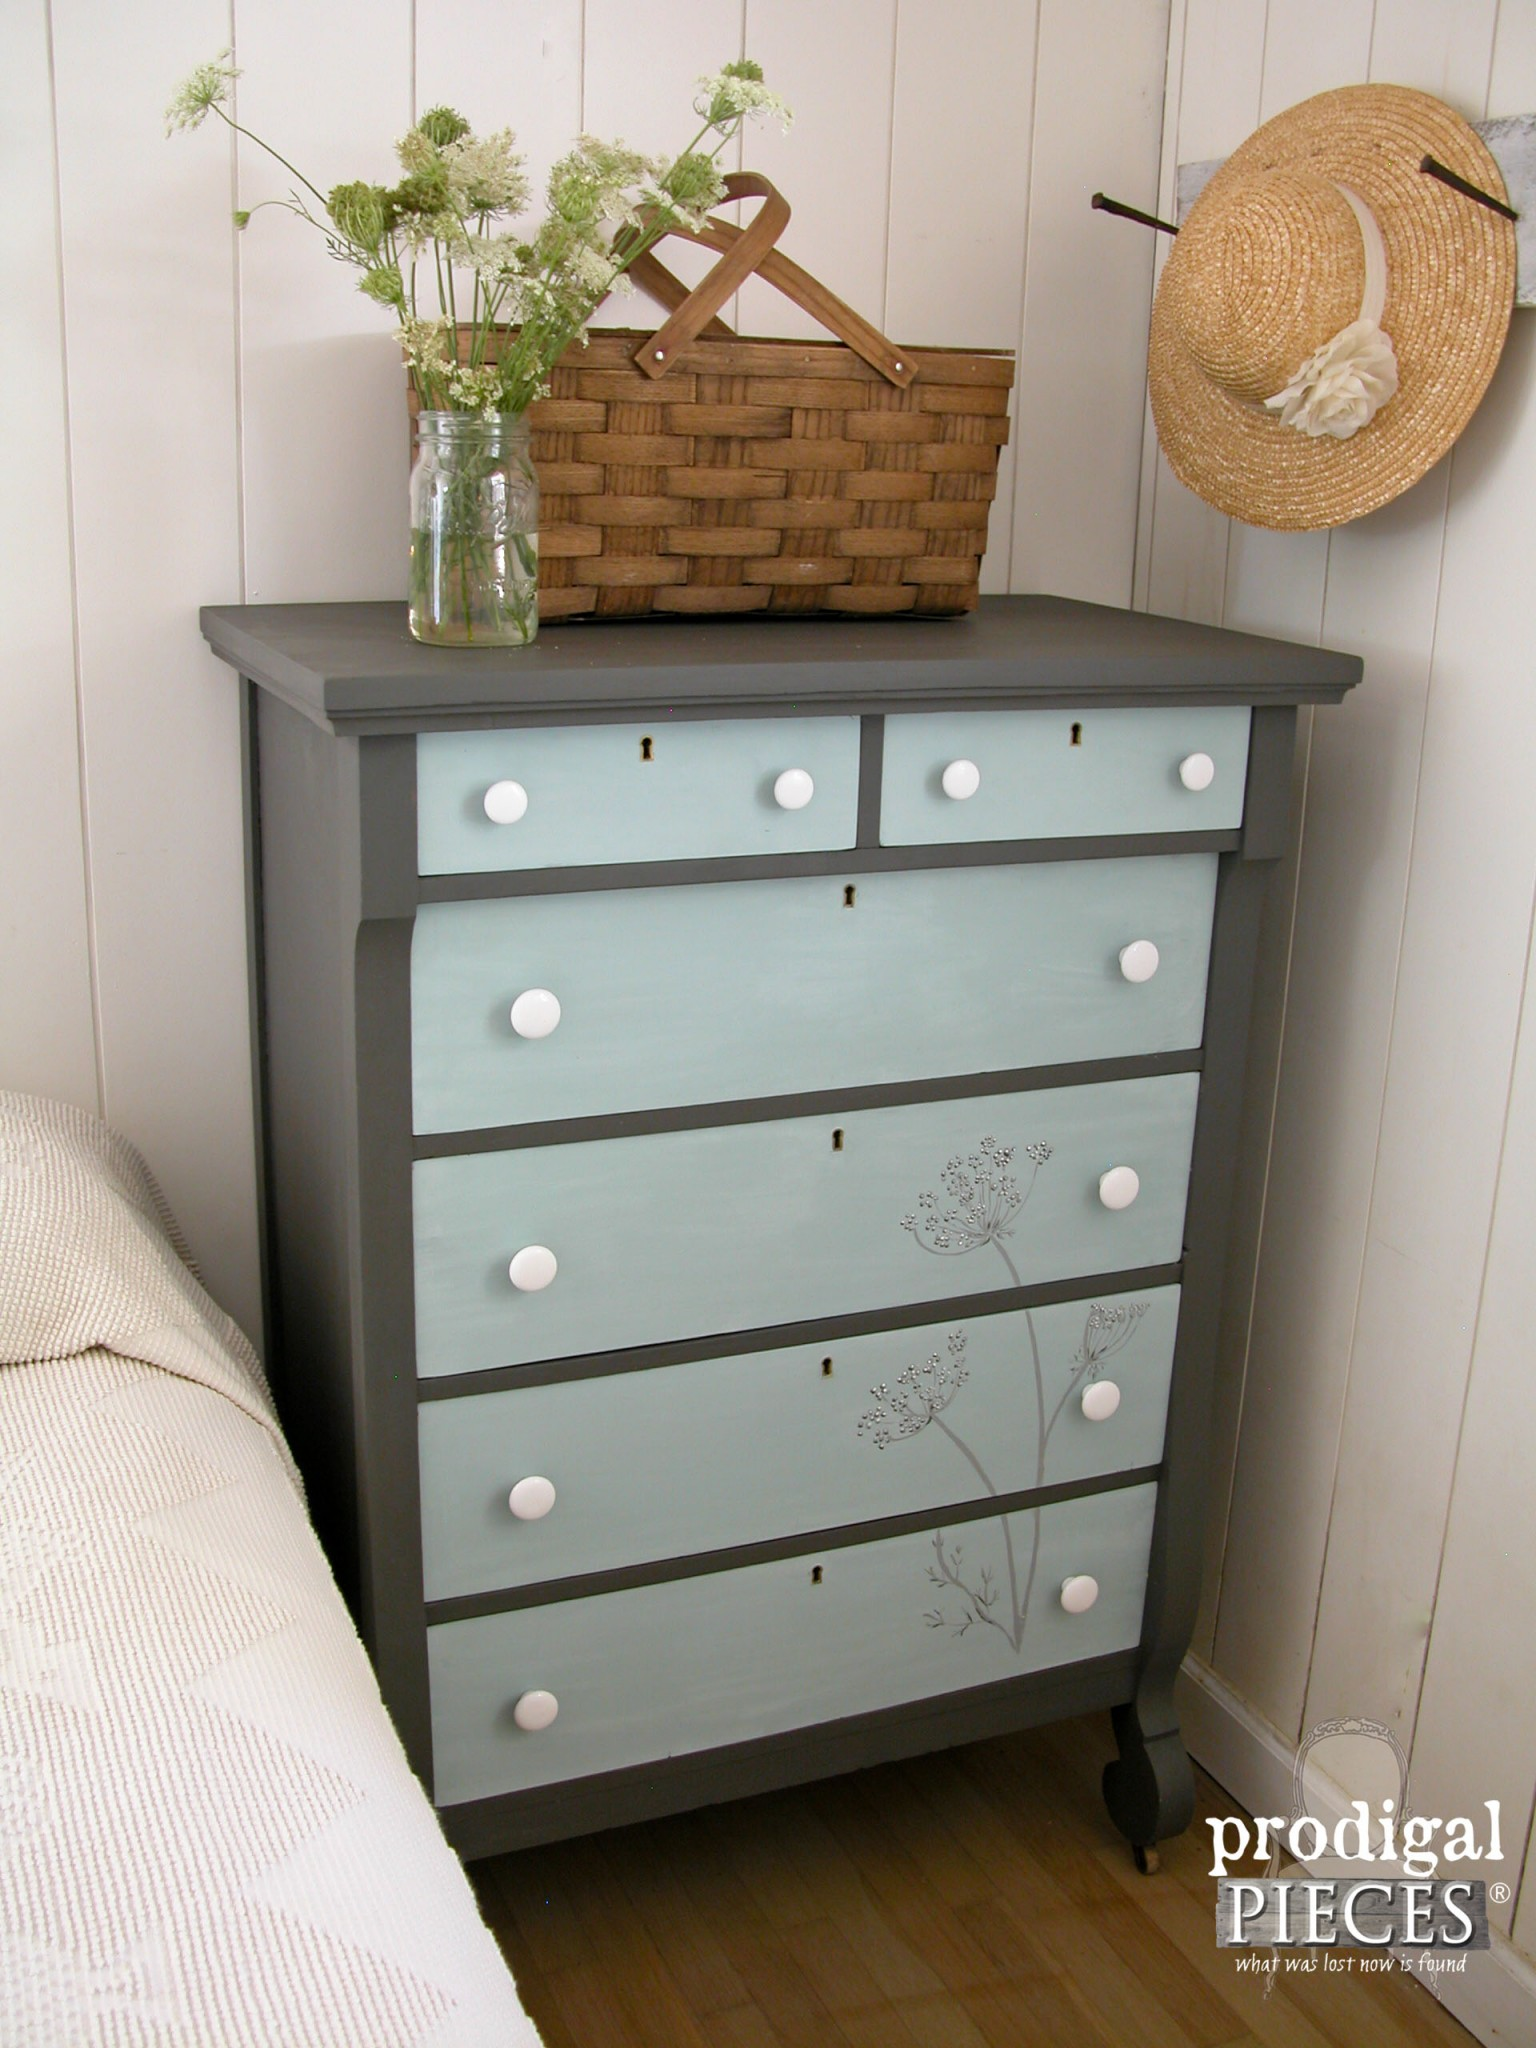 Farmhouse Style Hand Painted Empire Chest by Prodigal Pieces | prodigalpieces.com